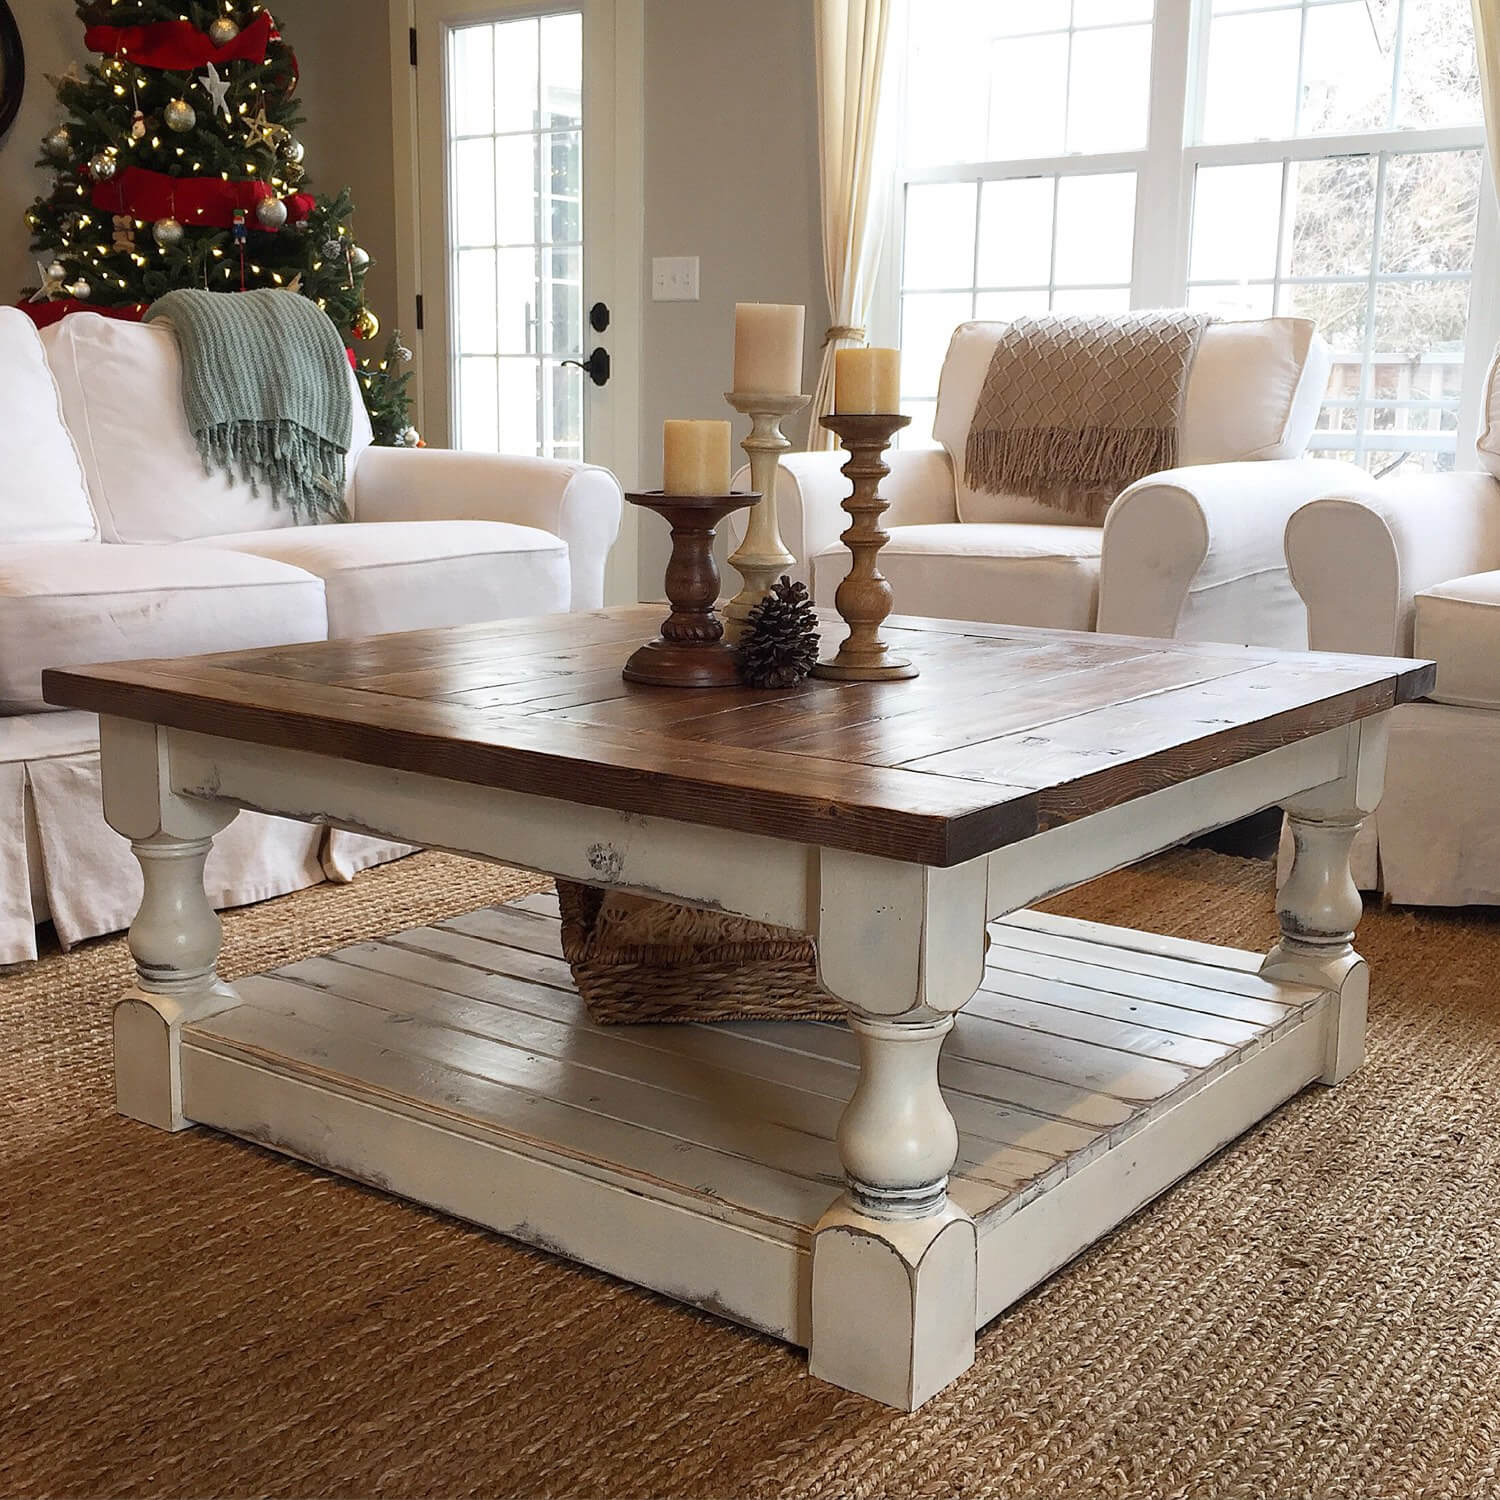 best coffee table decorating ideas and designs for homebnc square end elegant solid wood topped with turned candlesticks farmhouse tables paint distressed look mfg furniture green